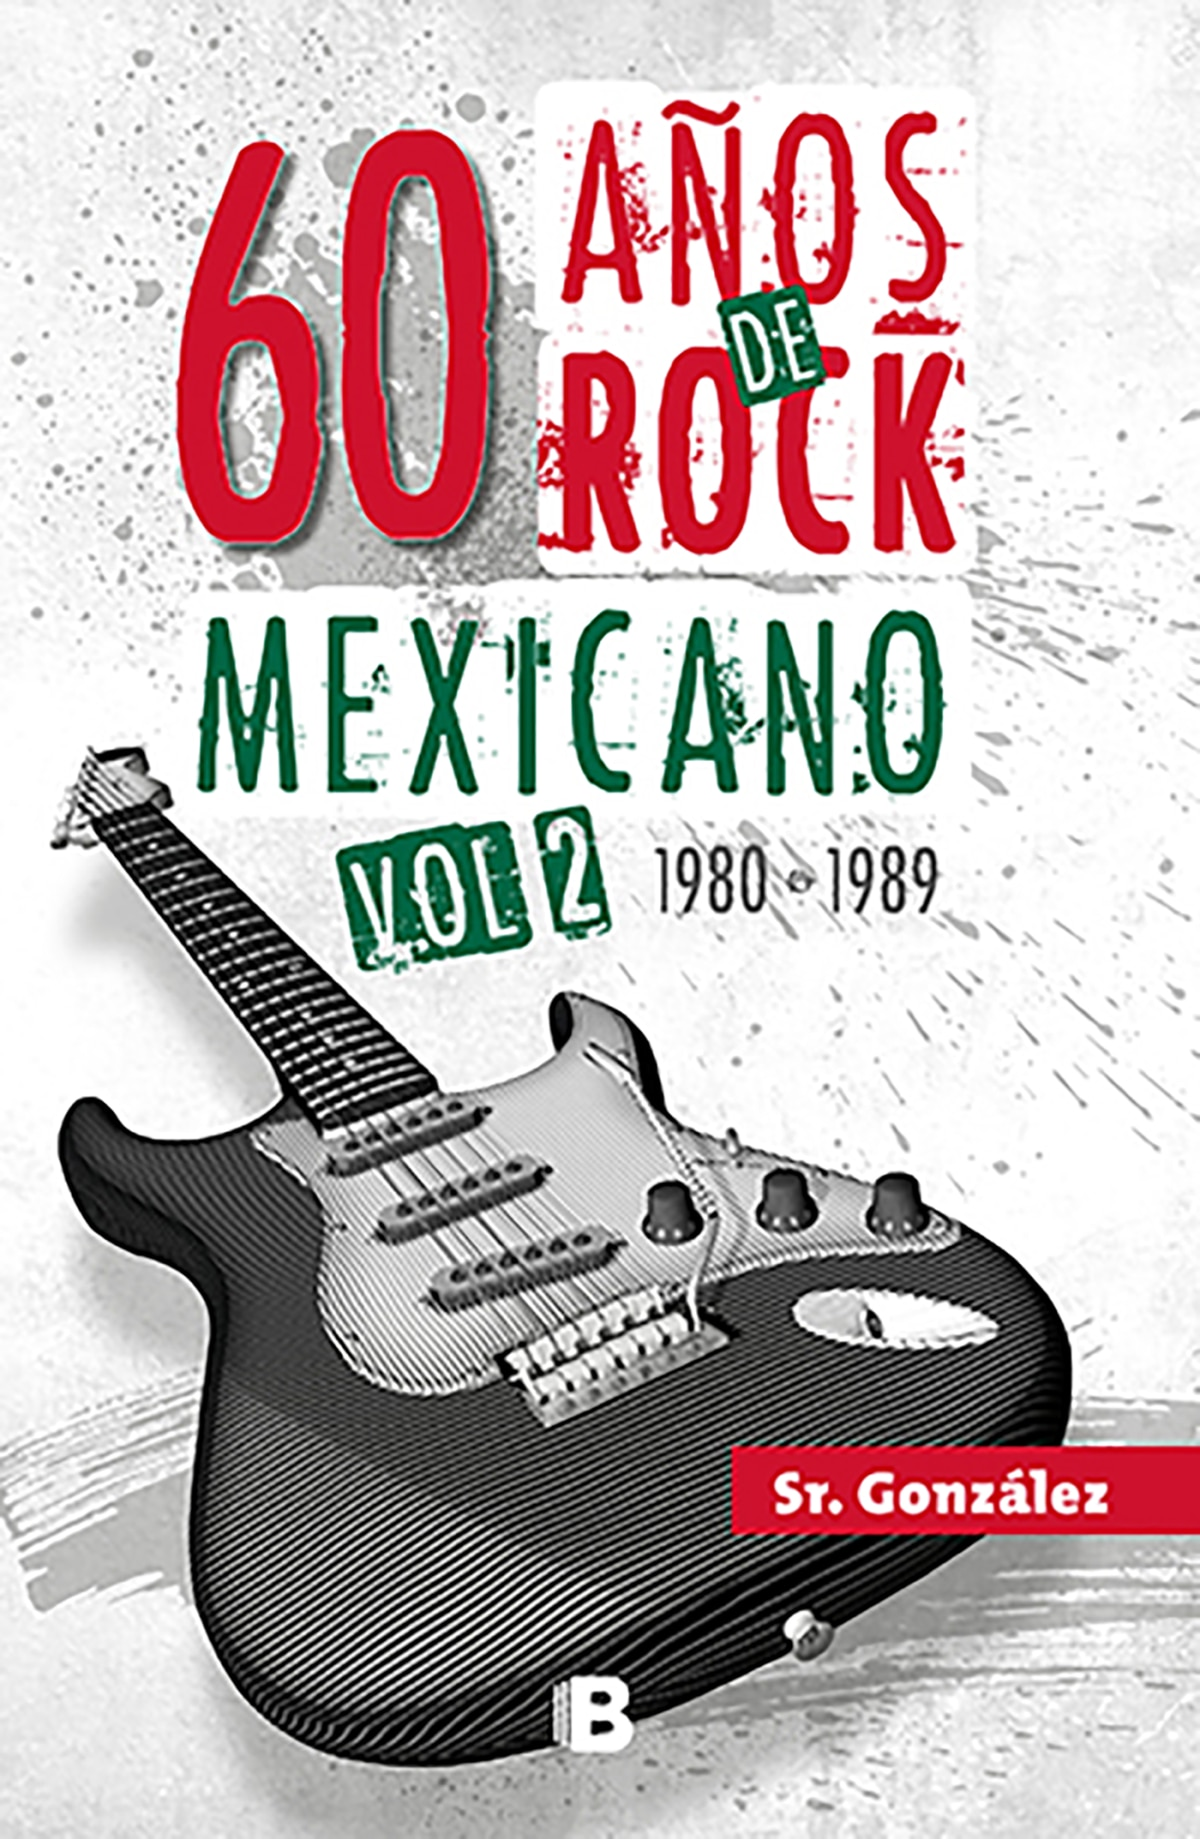 60 años de rock mexicano. Vol. 2